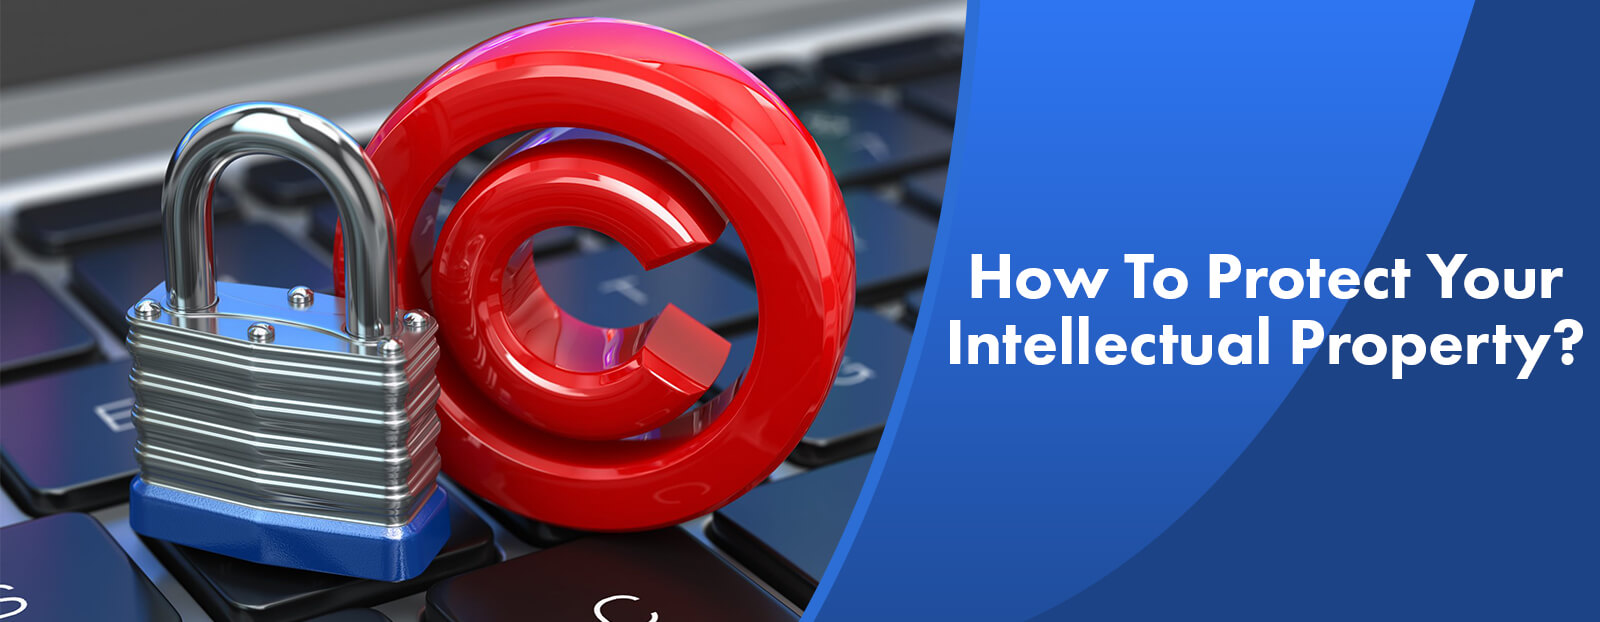 How To Protect Your Intellectual Property?